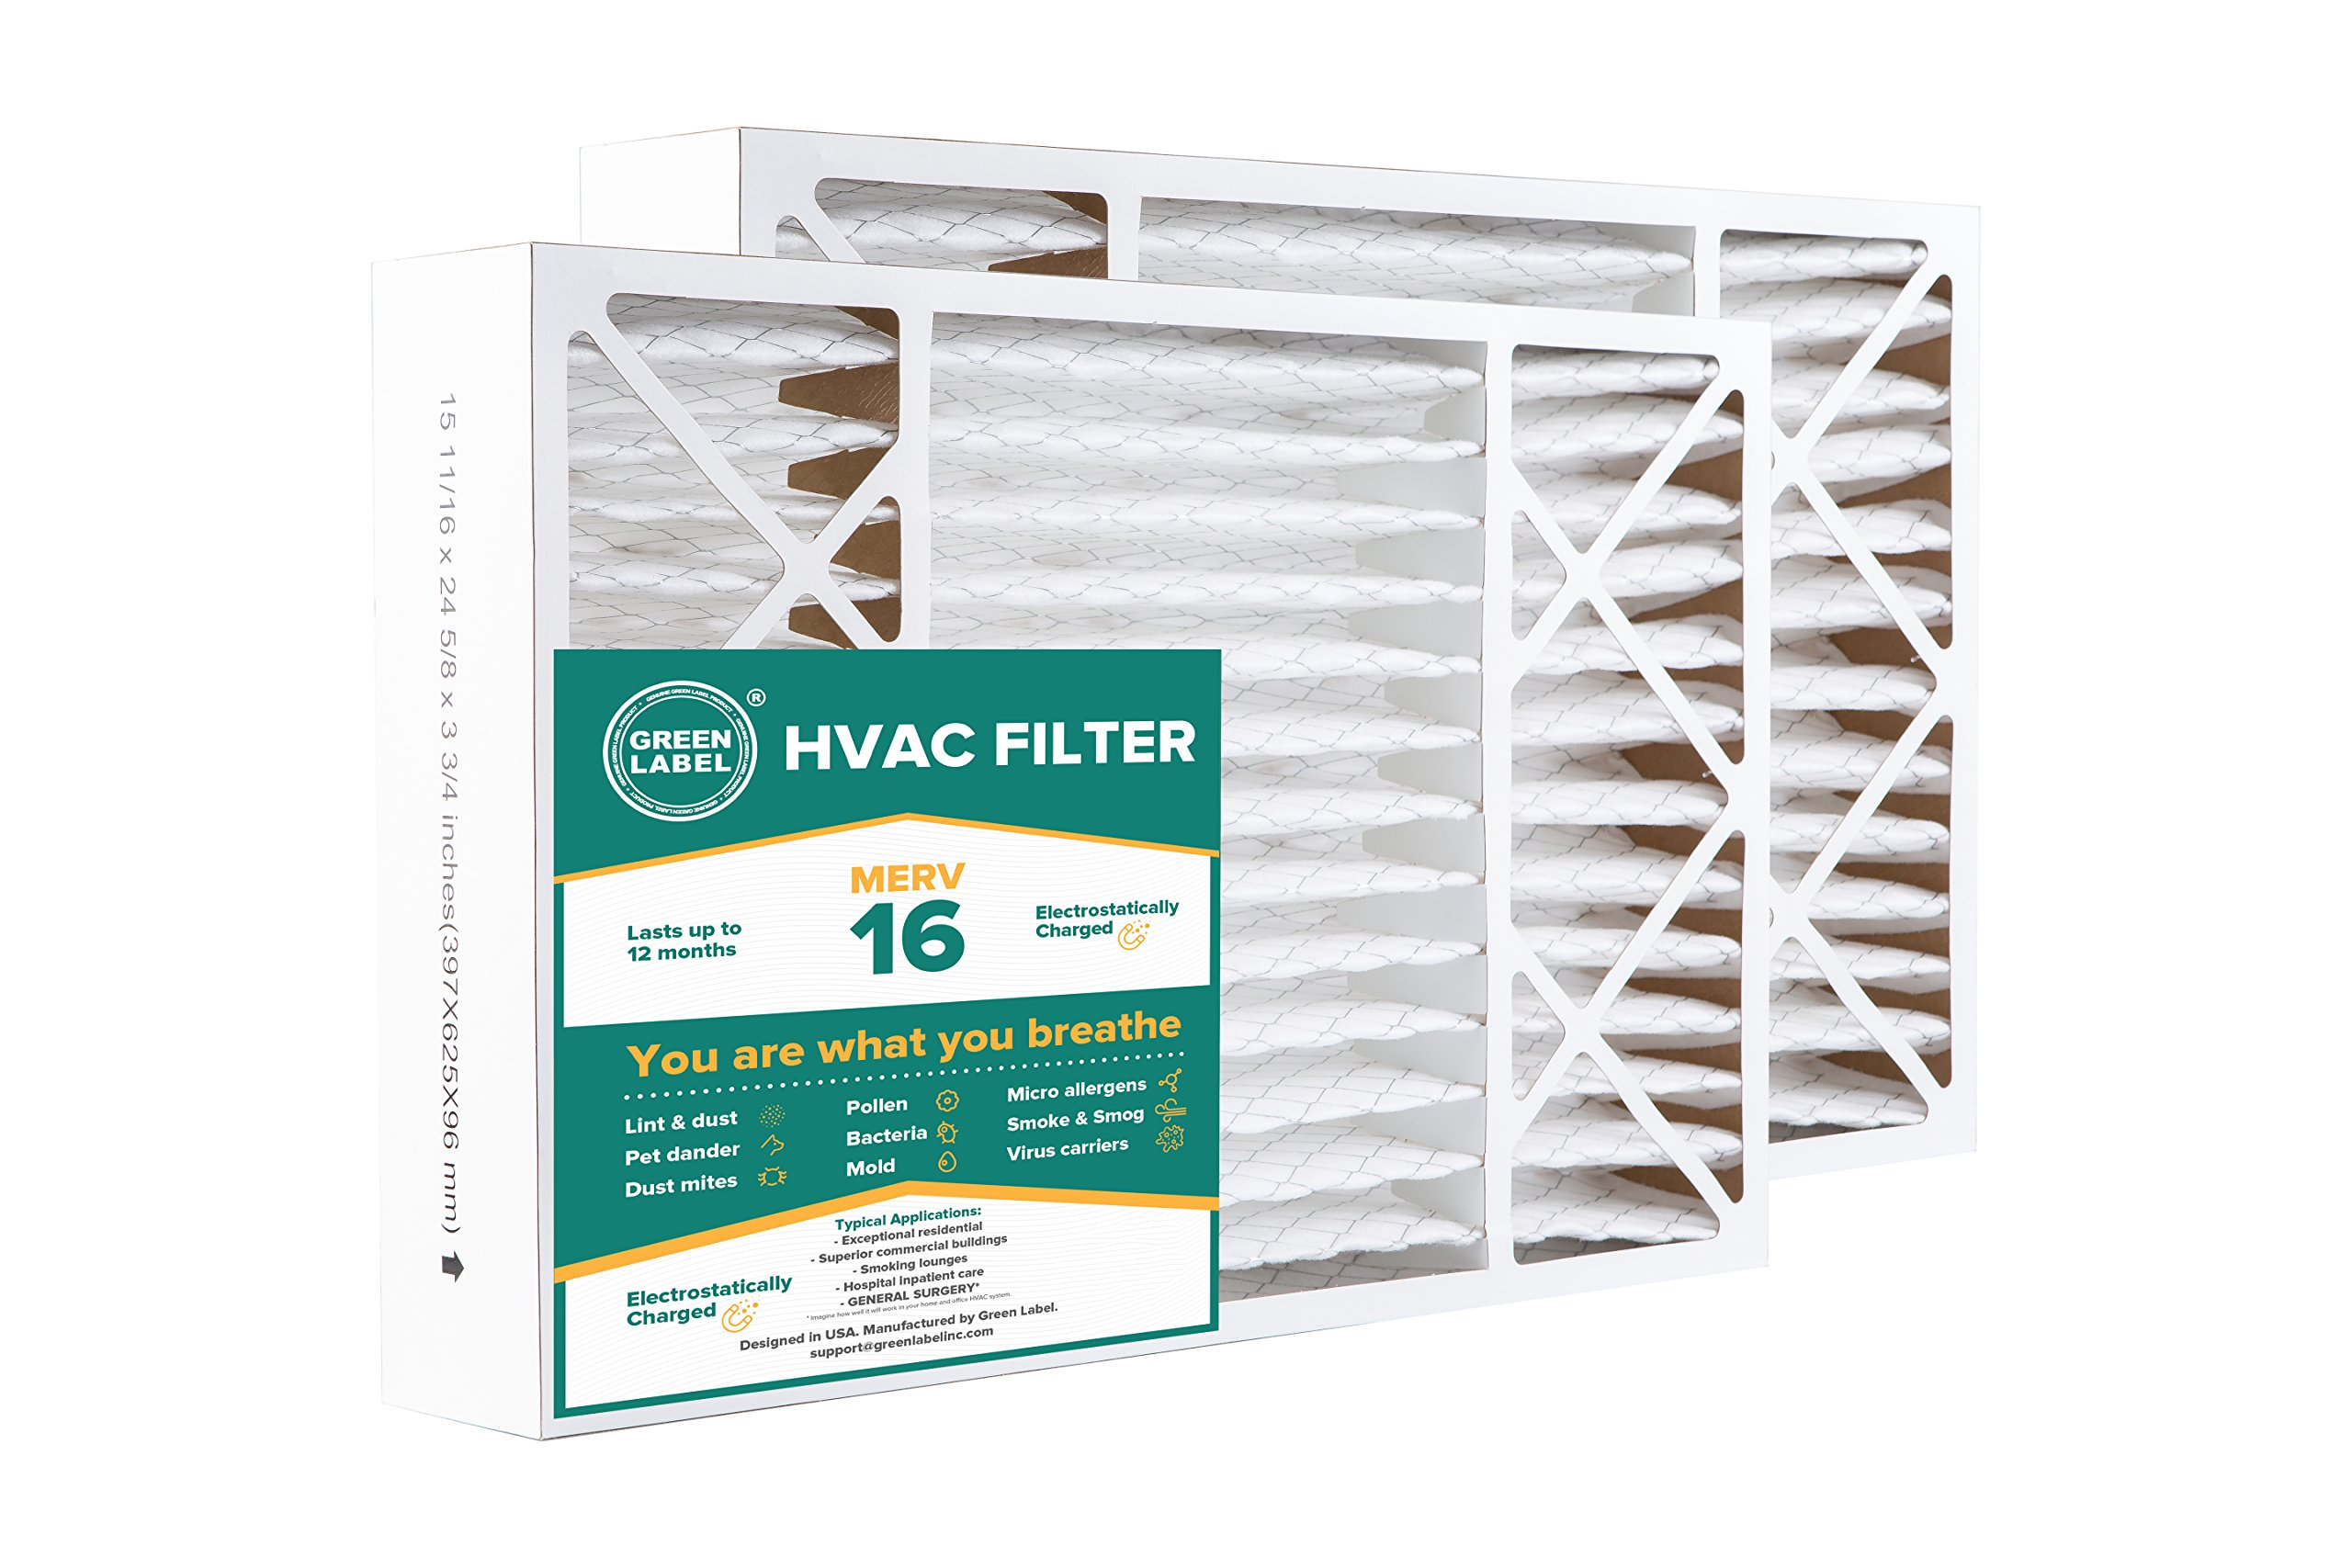 Green Label HVAC Air Filter 16x25x4, AC Furnace Air Ultra Cleaning Filter MERV 16 - Pack of 2